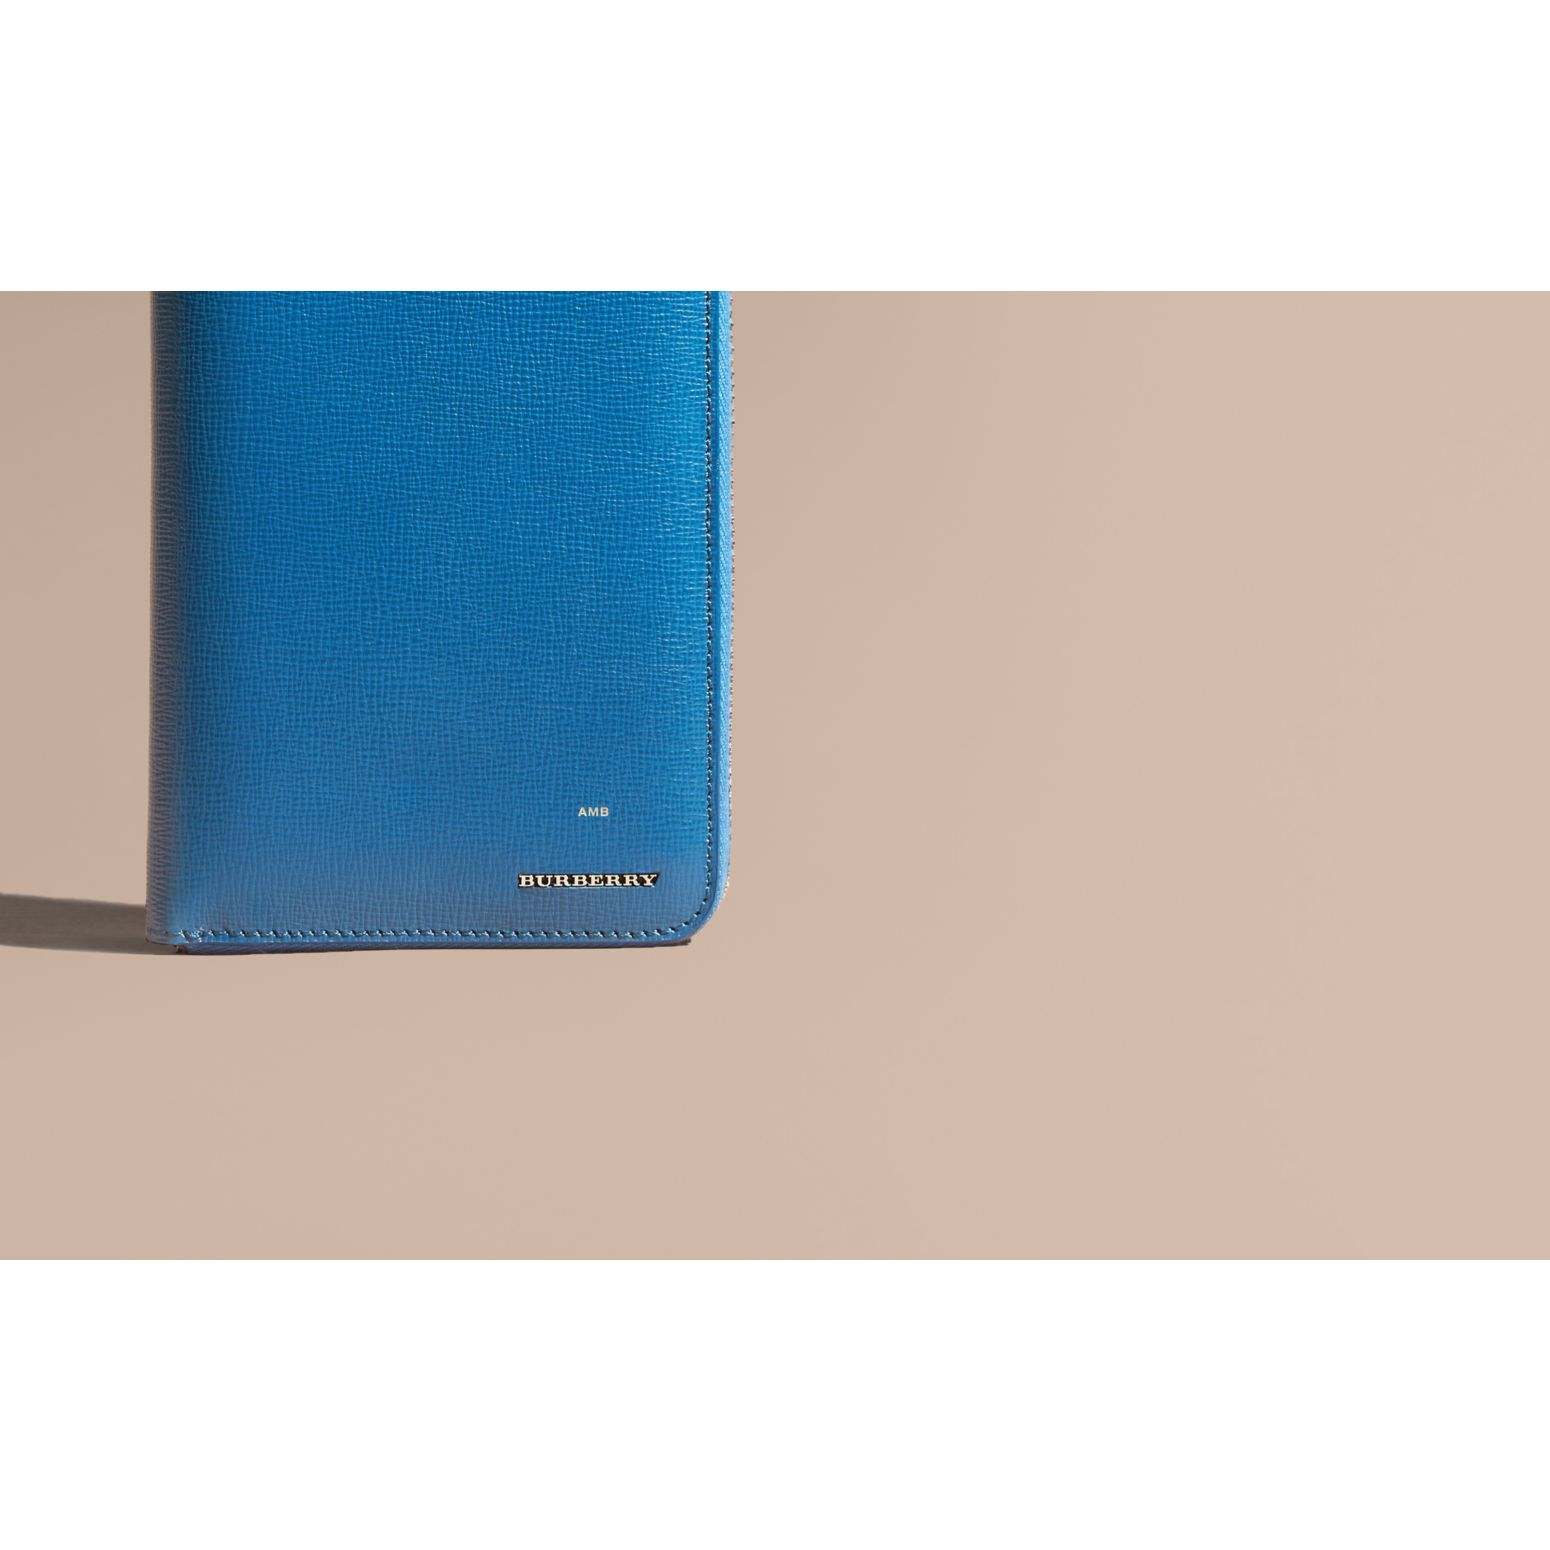 Mineral blue London Leather Ziparound Wallet Mineral Blue - gallery image 2